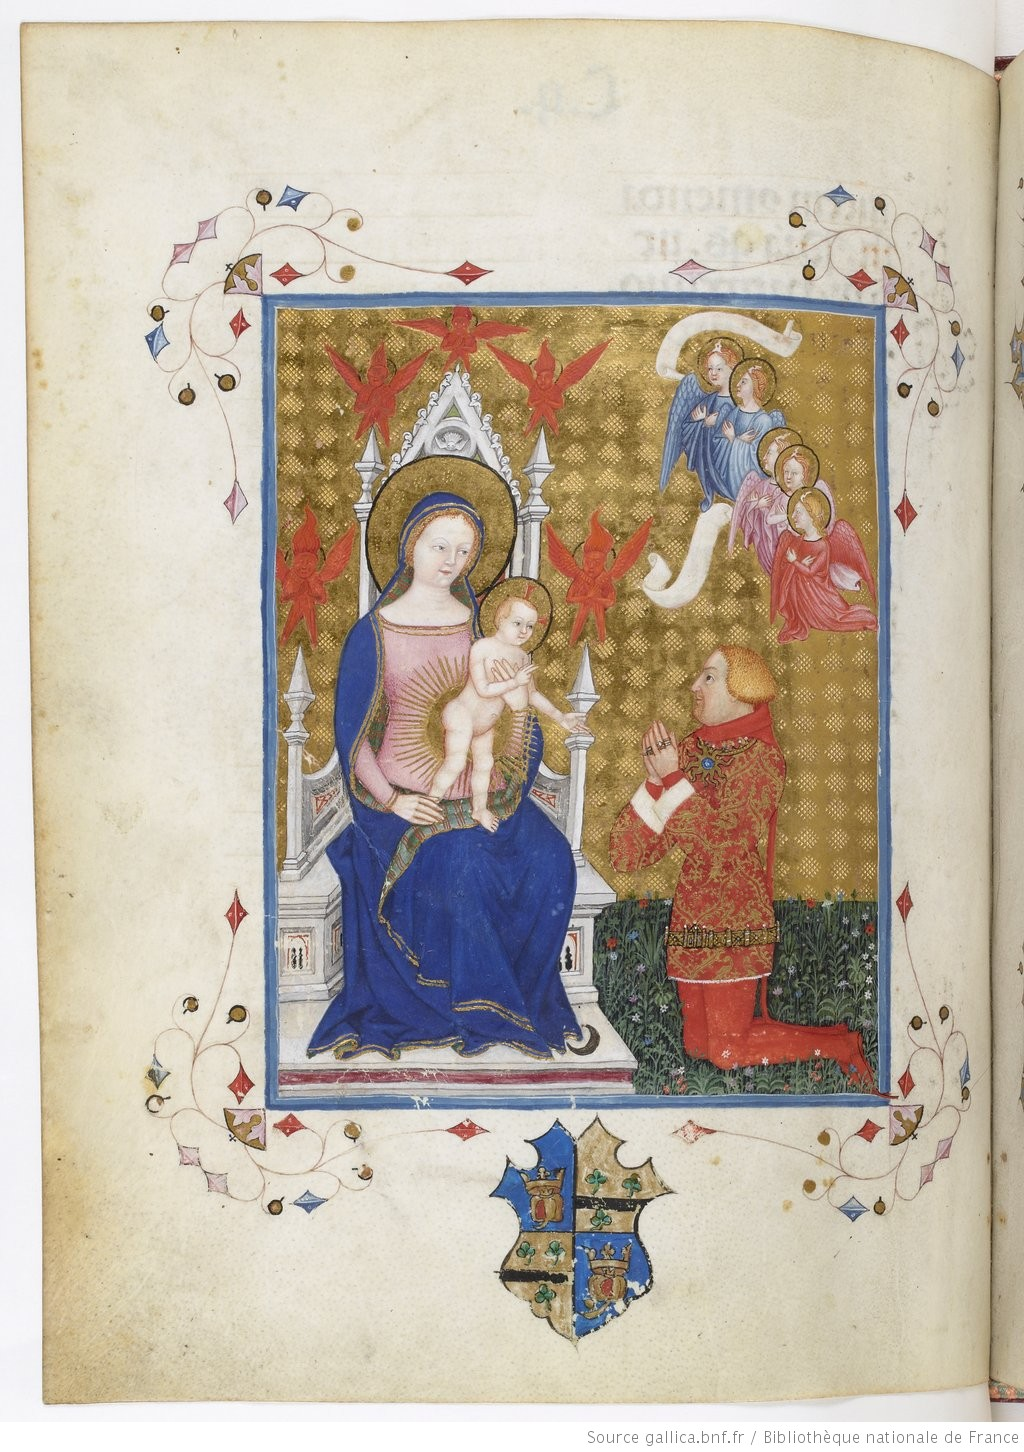 1385 ca Lombard illumination of Madonna and Child with donor, BNF ms. lat. 757, fol. 109v